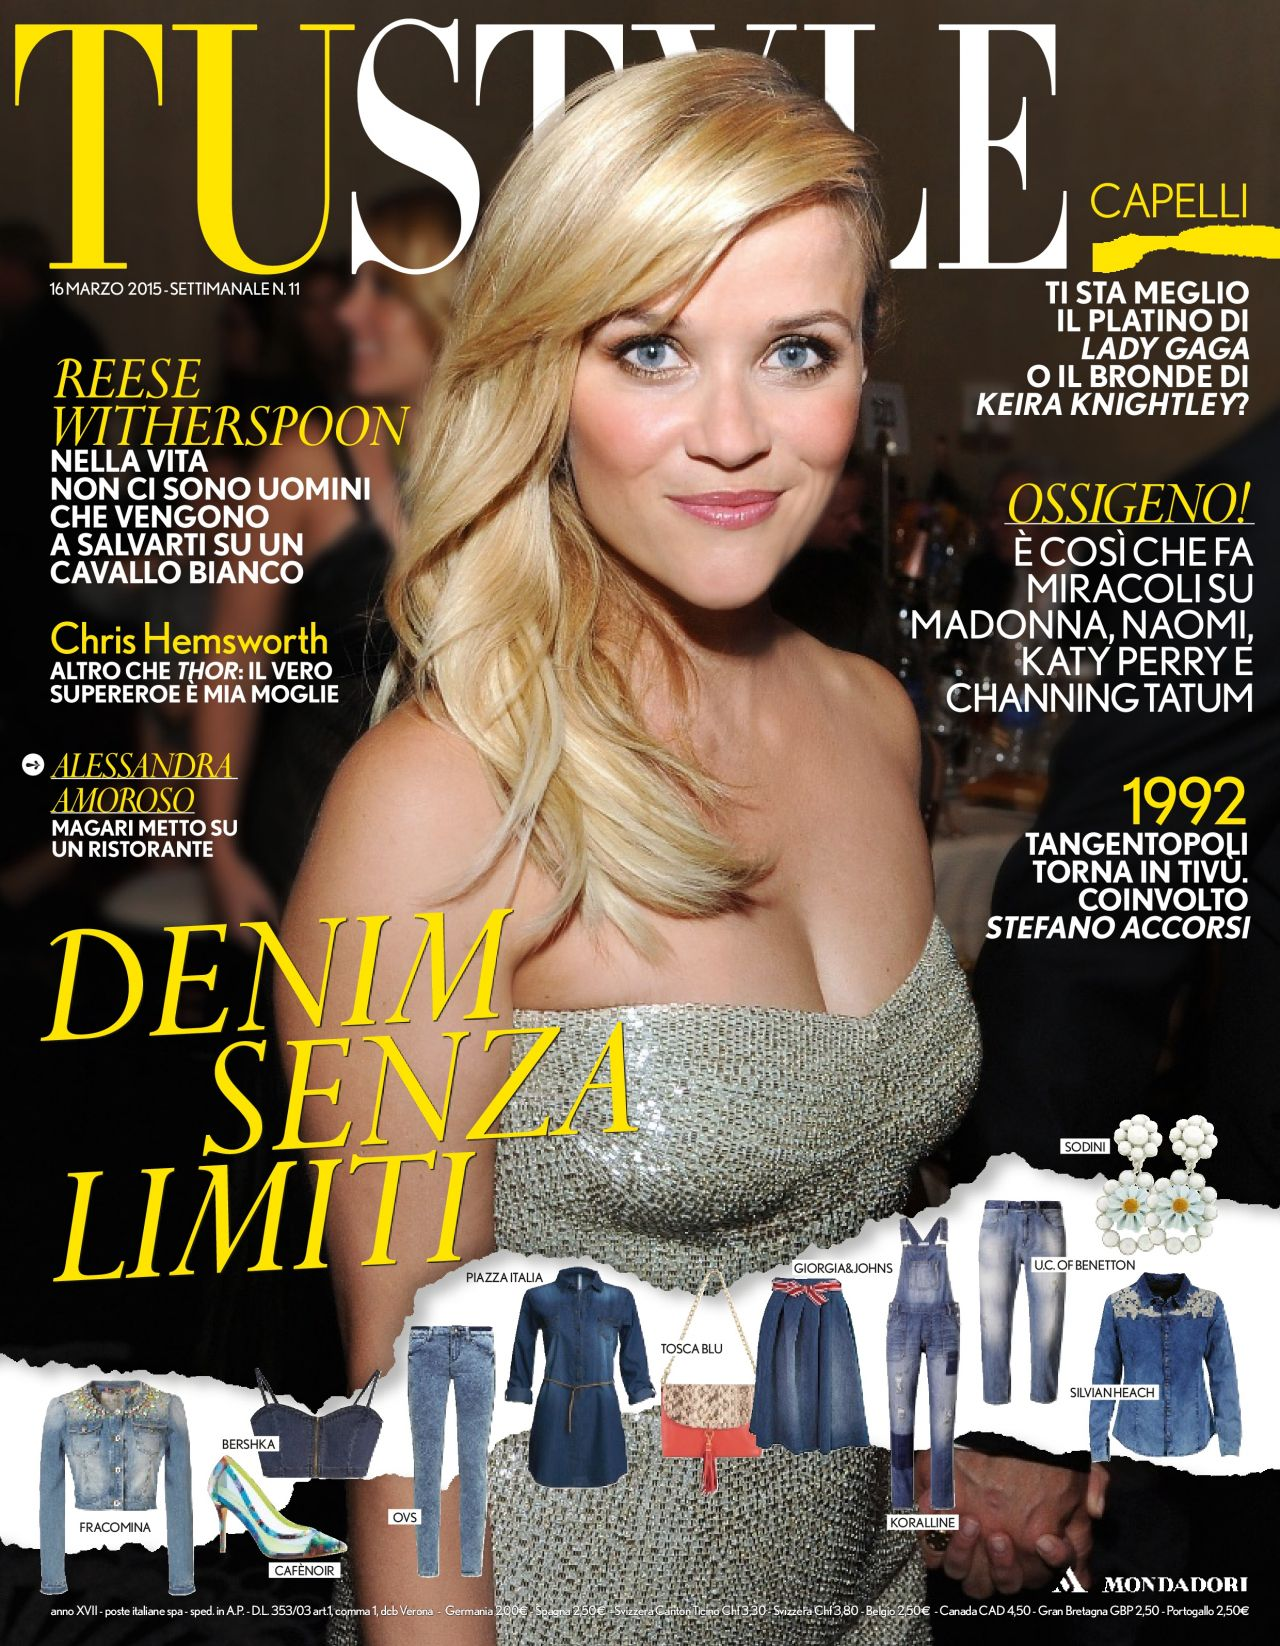 Reese Witherspoon - TuStyle Magazine March 2015 Issue